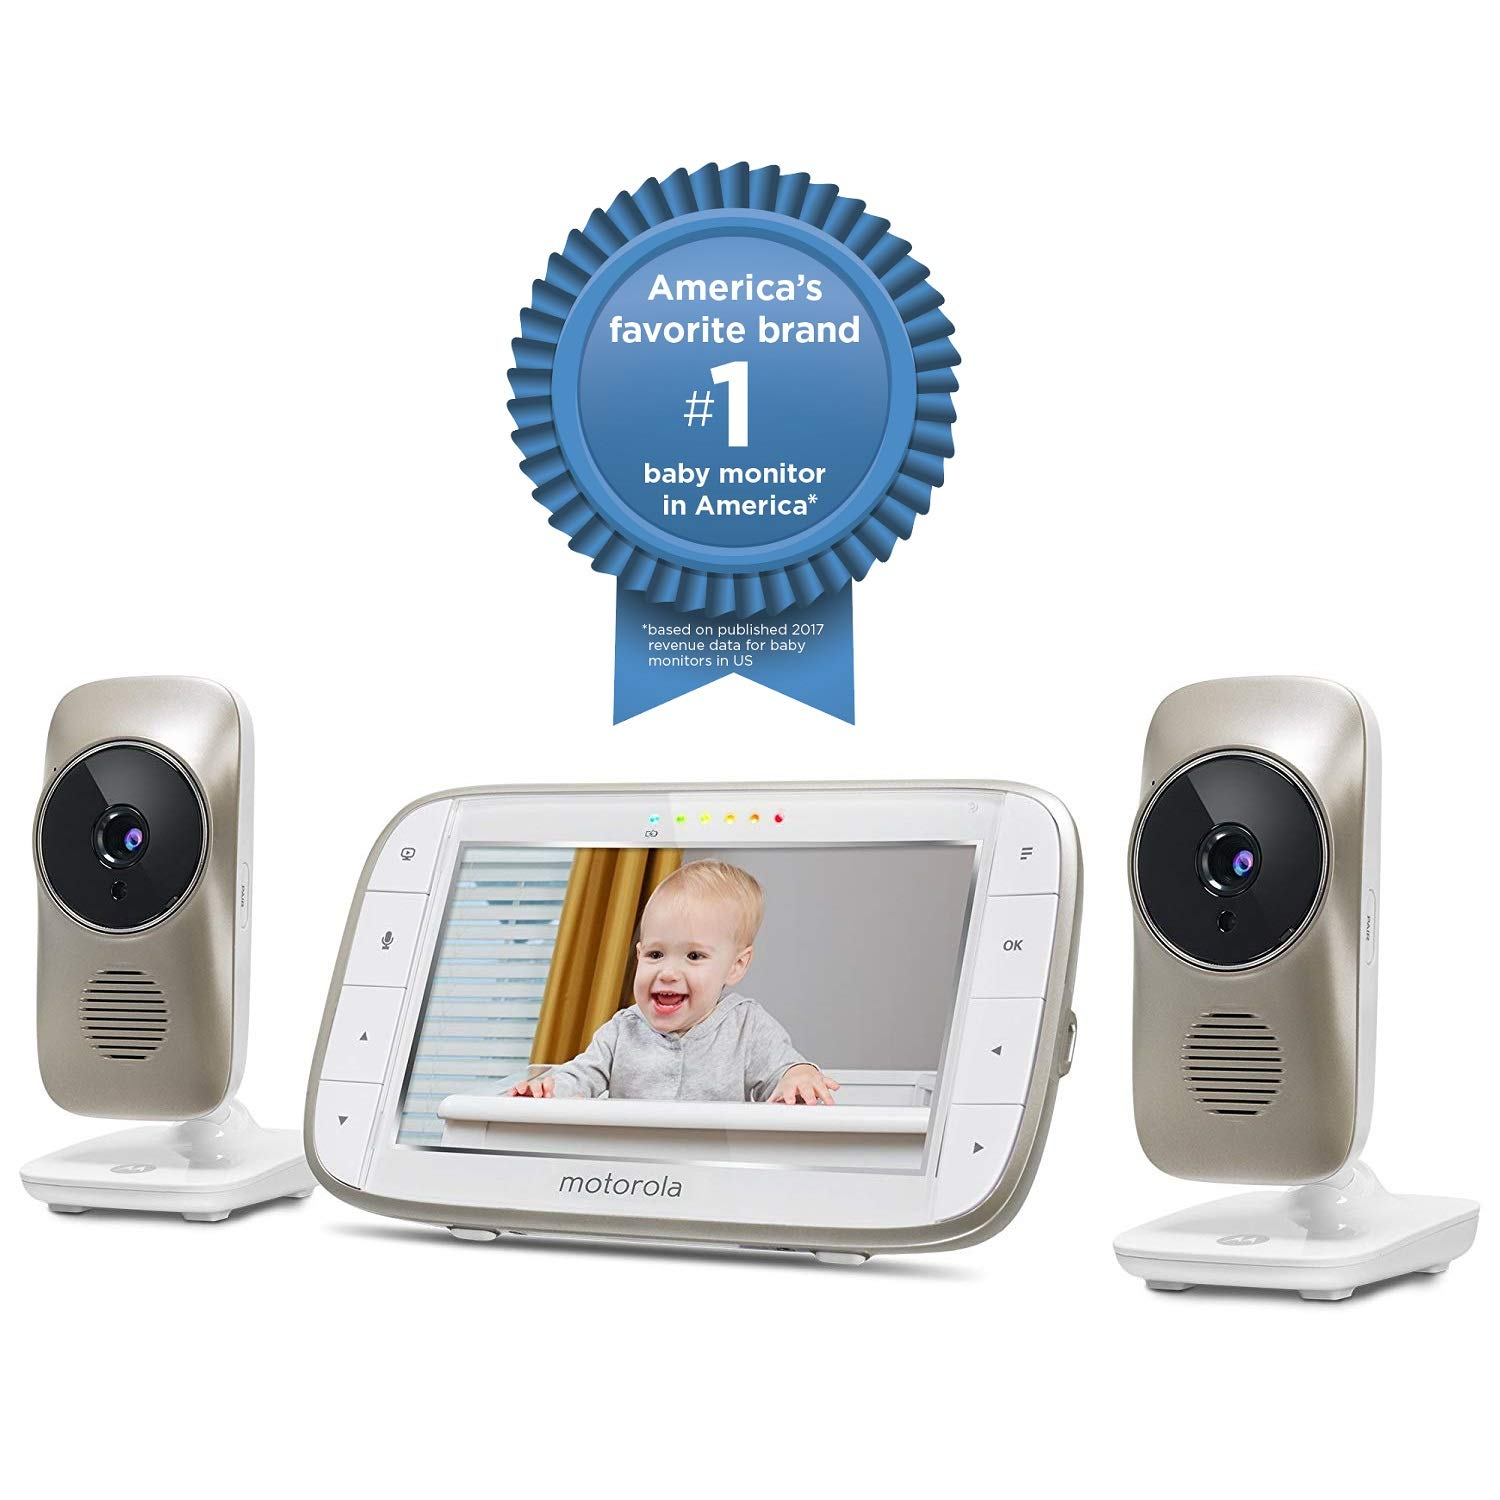 Motorola MBP845CONNECT-2 5'' Video Baby Monitor with Wi-Fi Viewing, 2 Cameras, Digital Zoom, Two-Way Audio, and Room Temperature Display by Motorola Baby (Image #2)